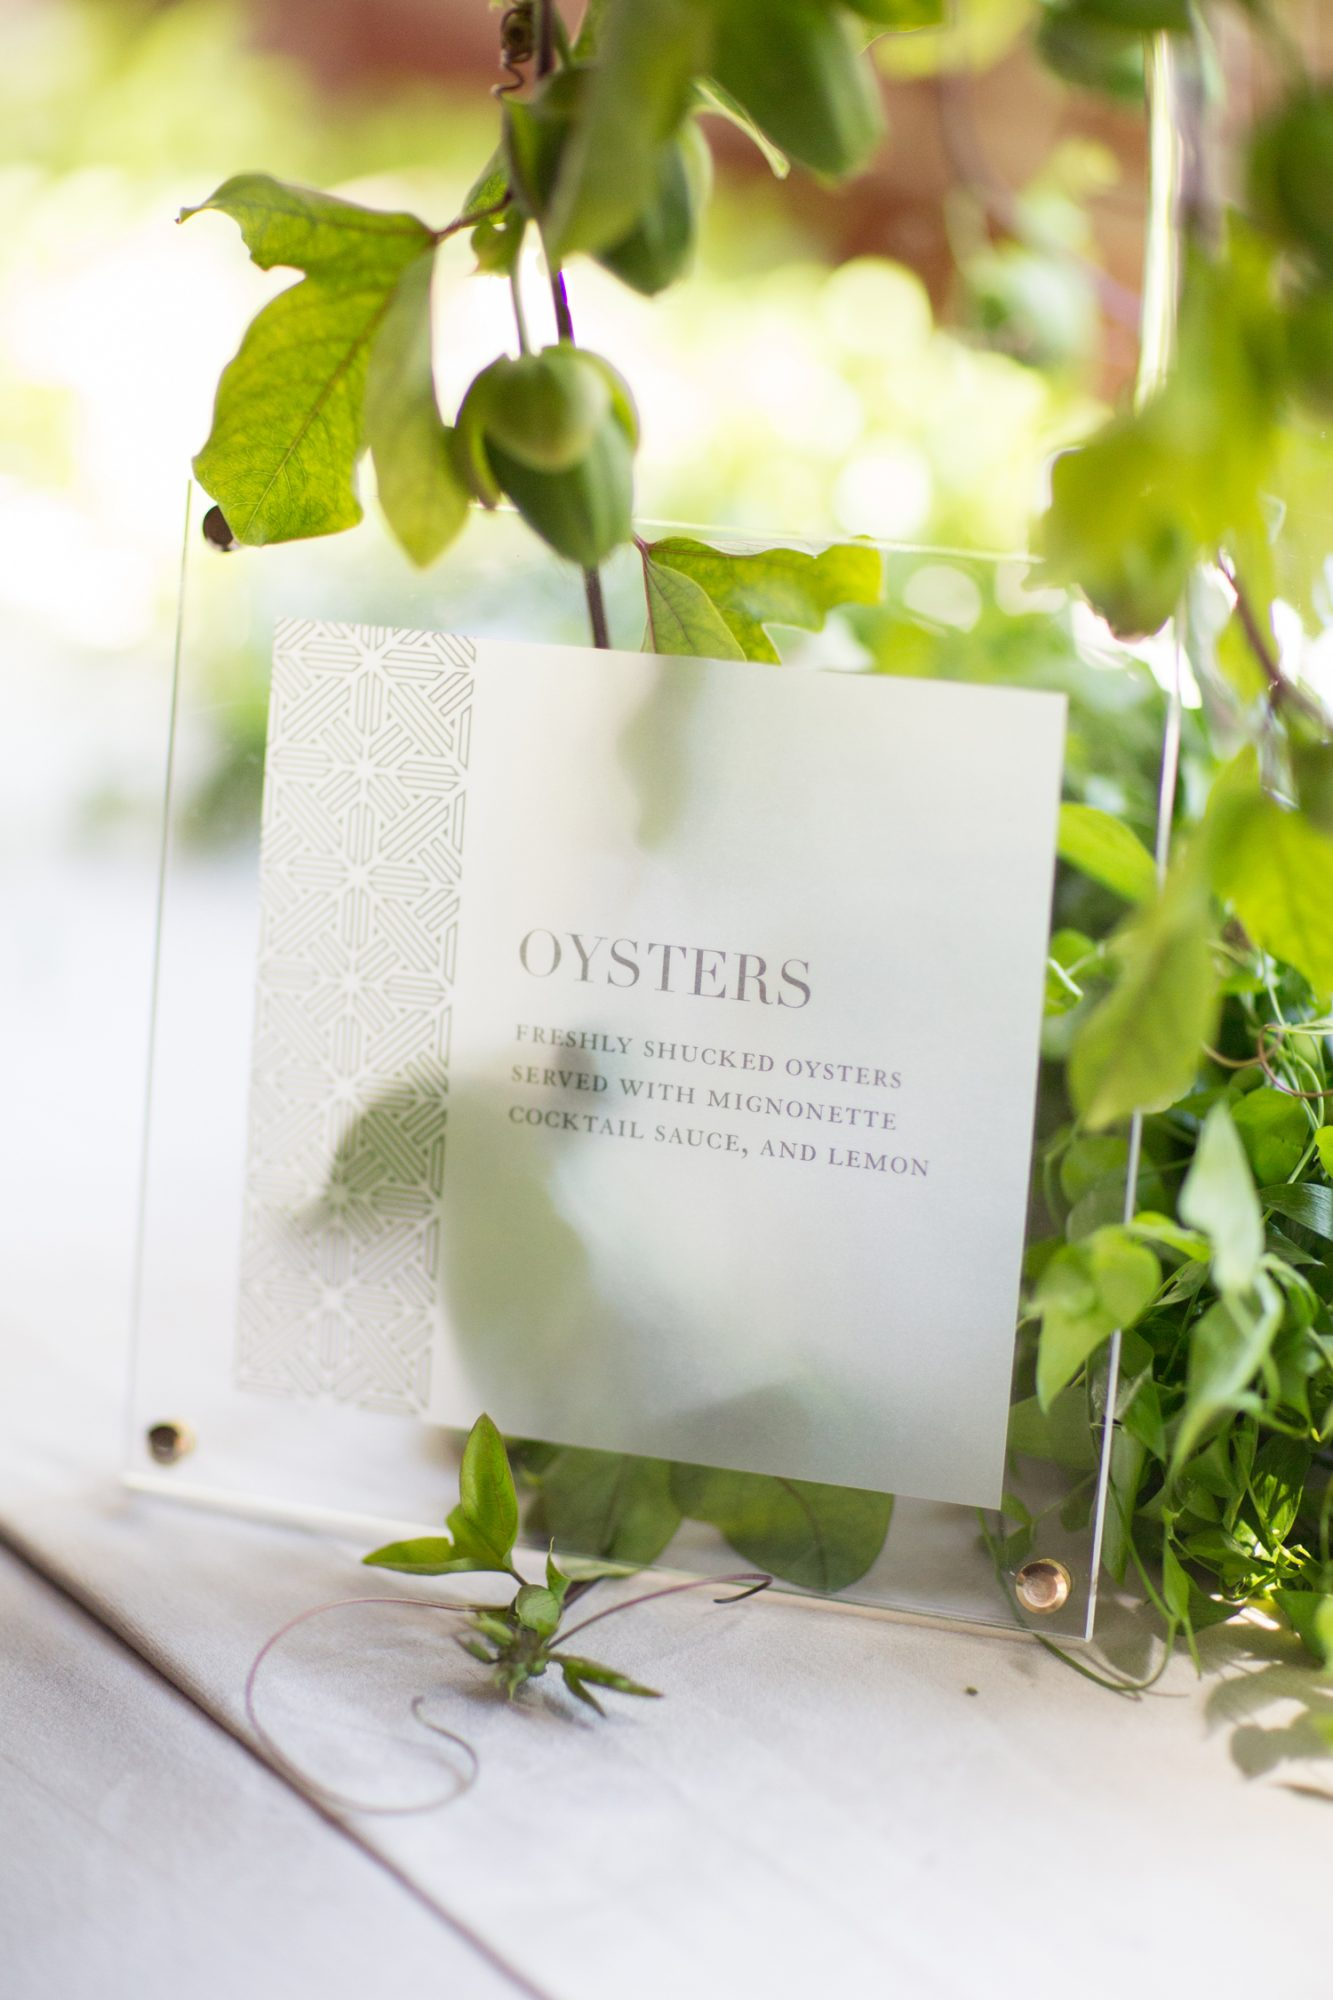 vellum signs with plants showing through